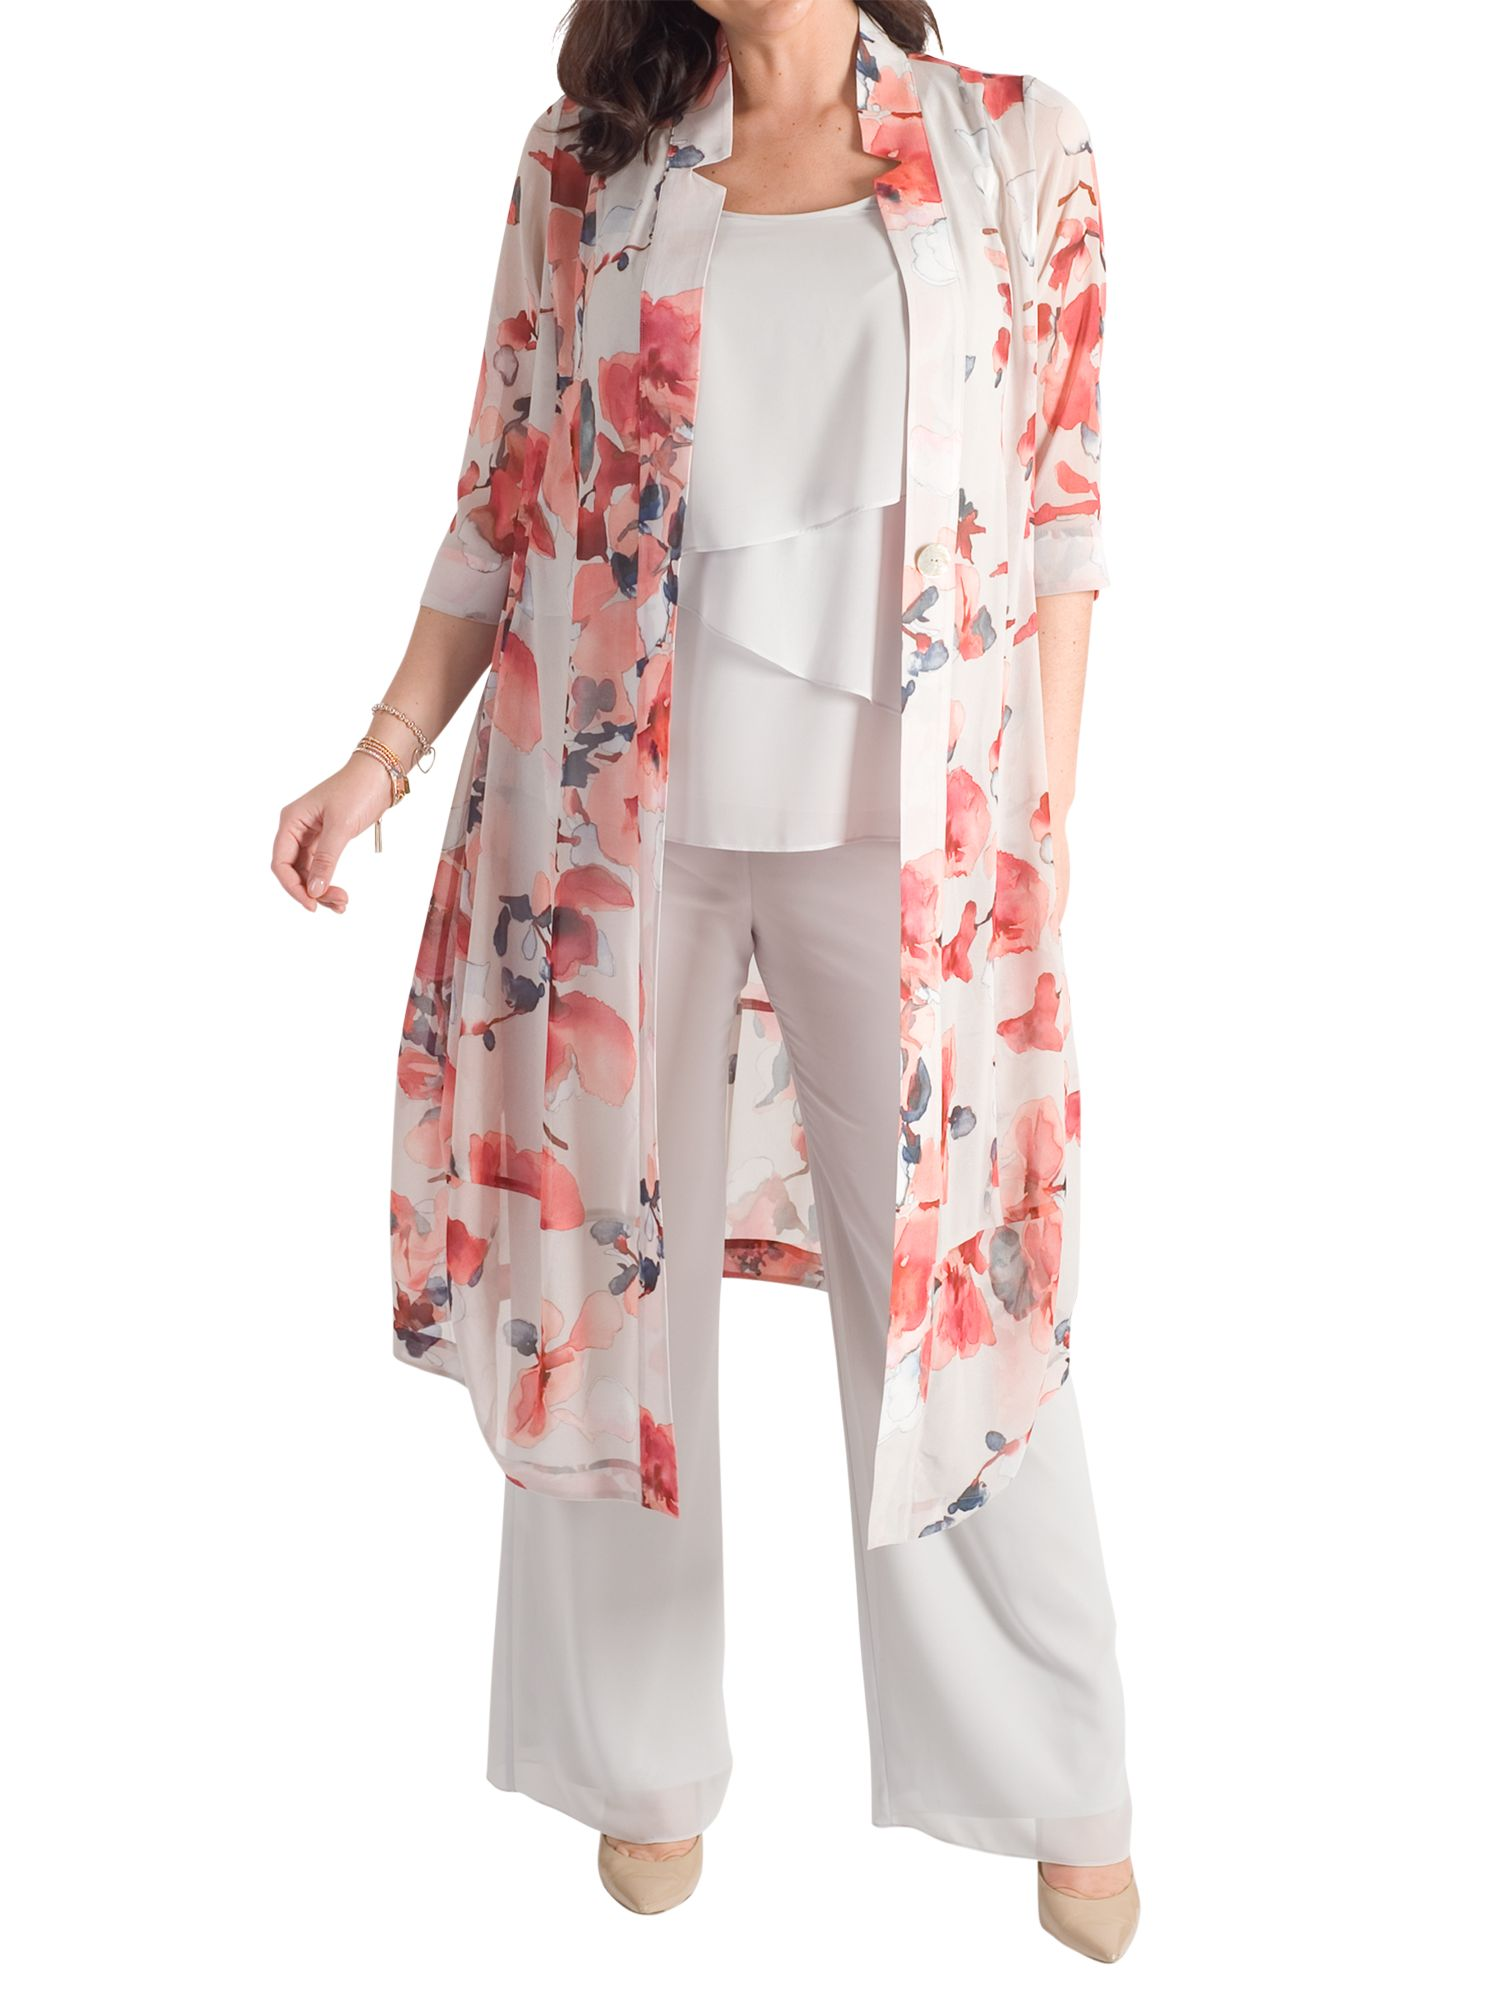 Chesca Chesca Floral Chiffon Coat, Silver Grey/Red